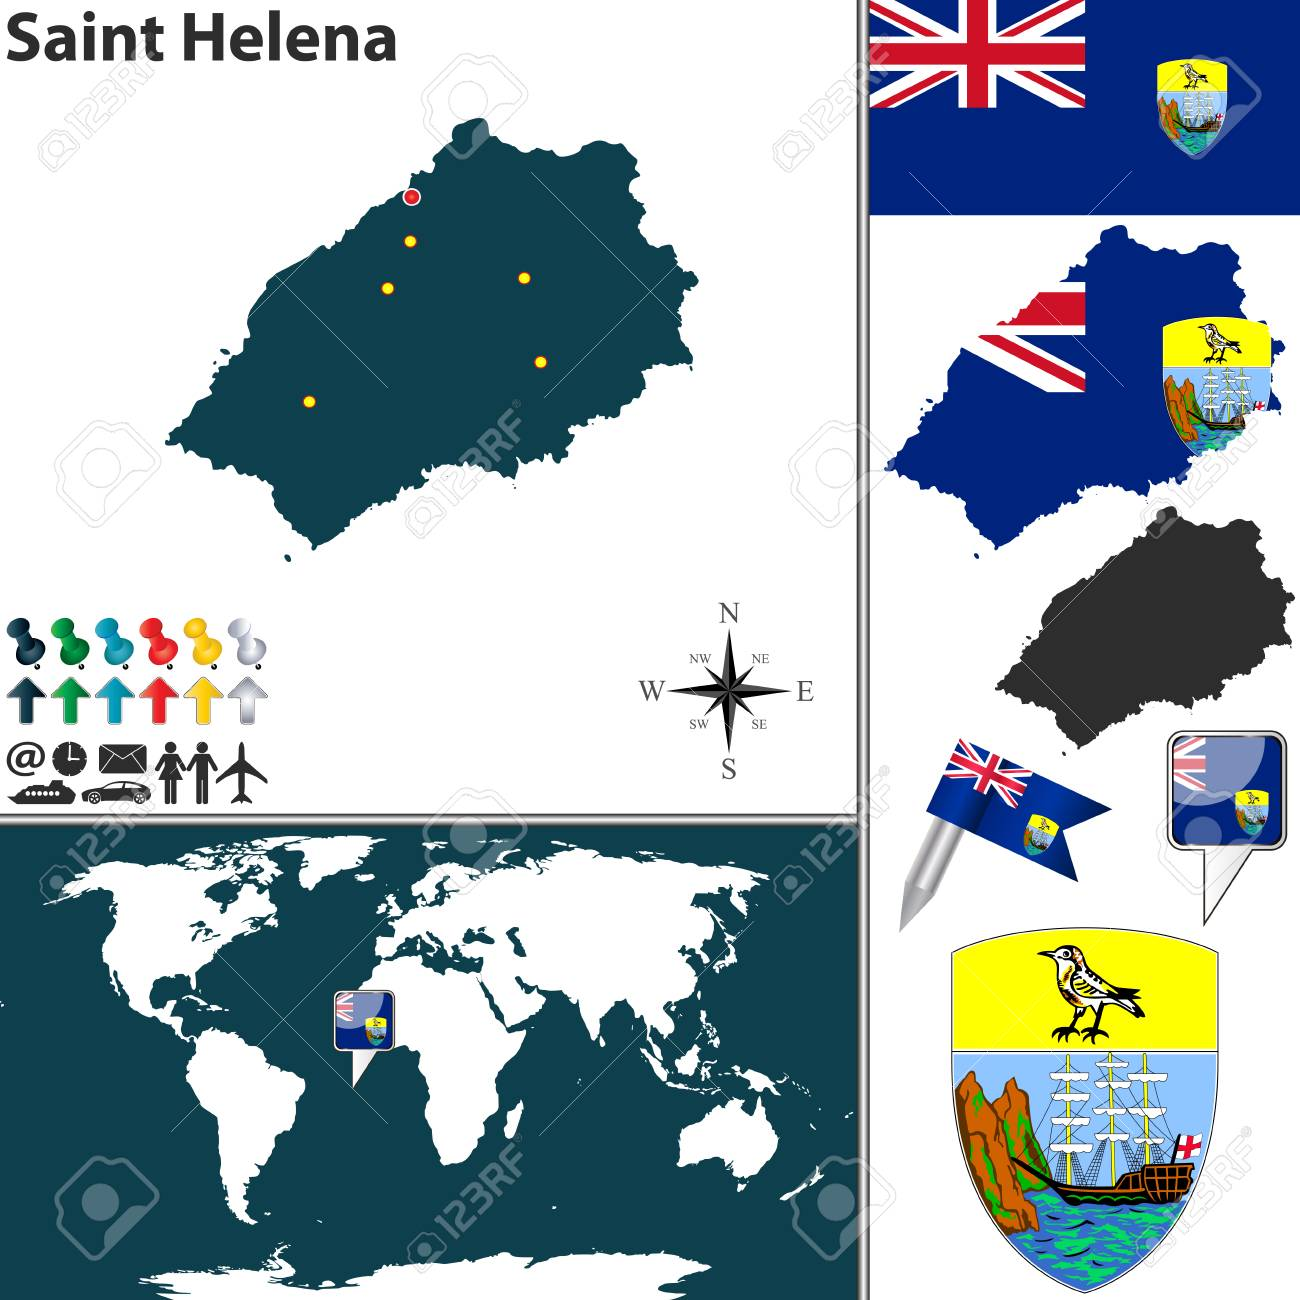 St Helena On World Map.Vector Map Of Saint Helena Island With Coat Of Arms And Location